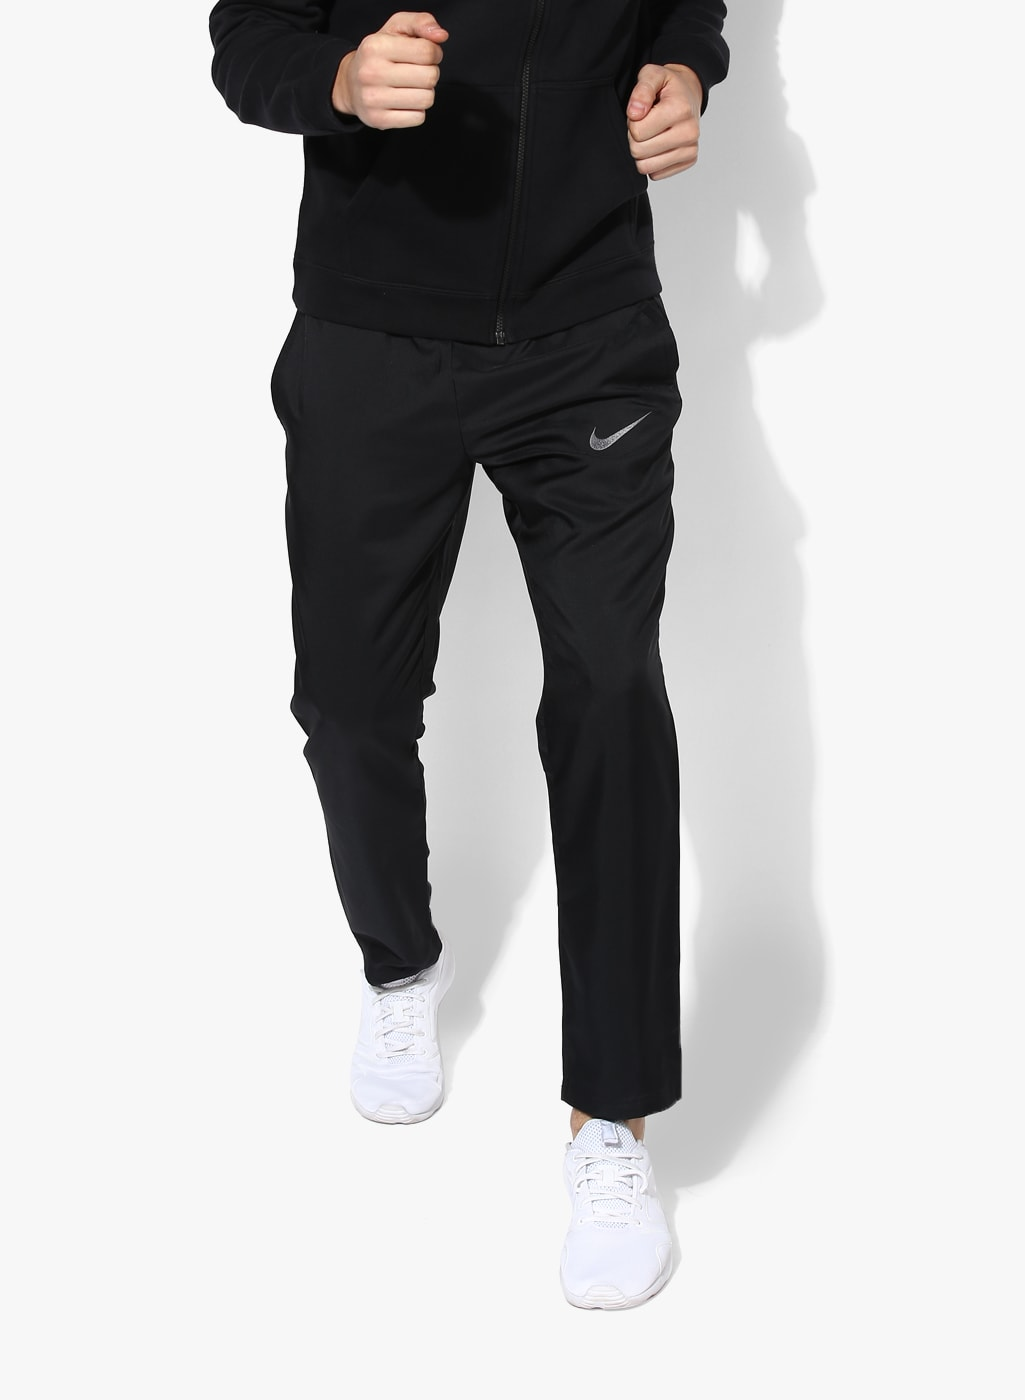 16a6ce08f Nike As M Nk Dry Team Woven Black Track Pants for men price - Best ...